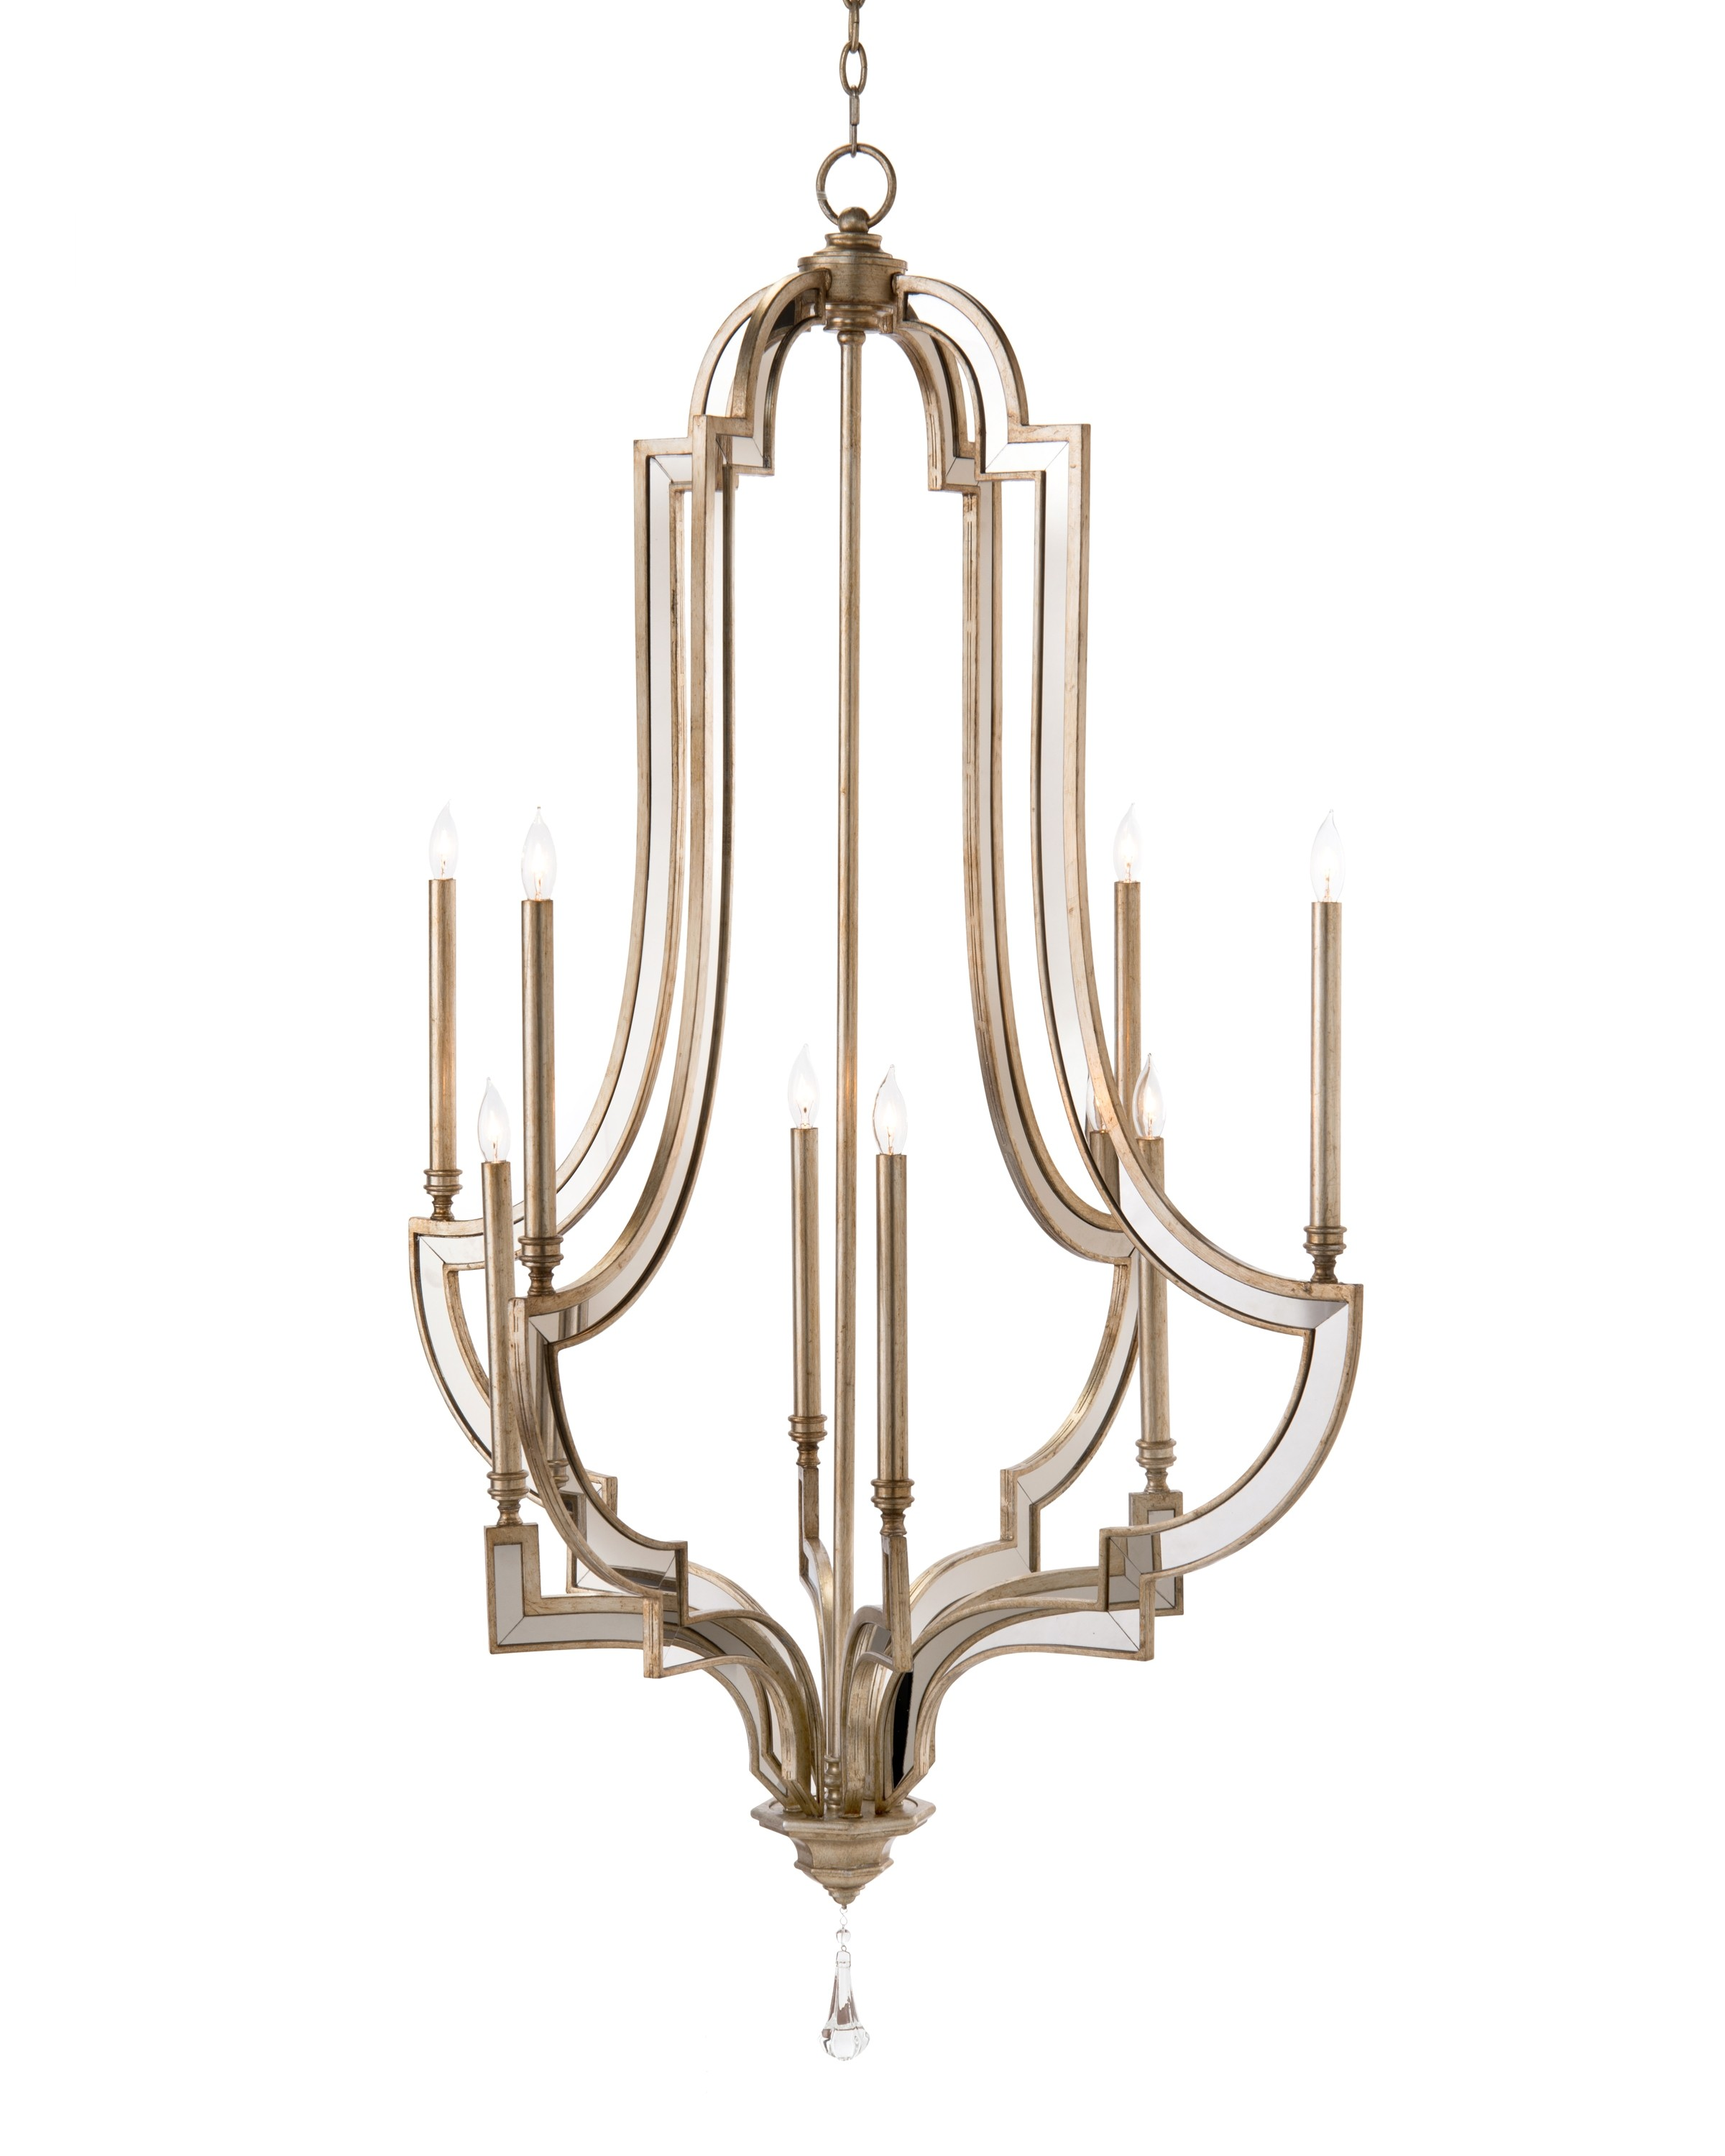 Eight-Light Large Chandelier in Antique Silver & Mirror Finish